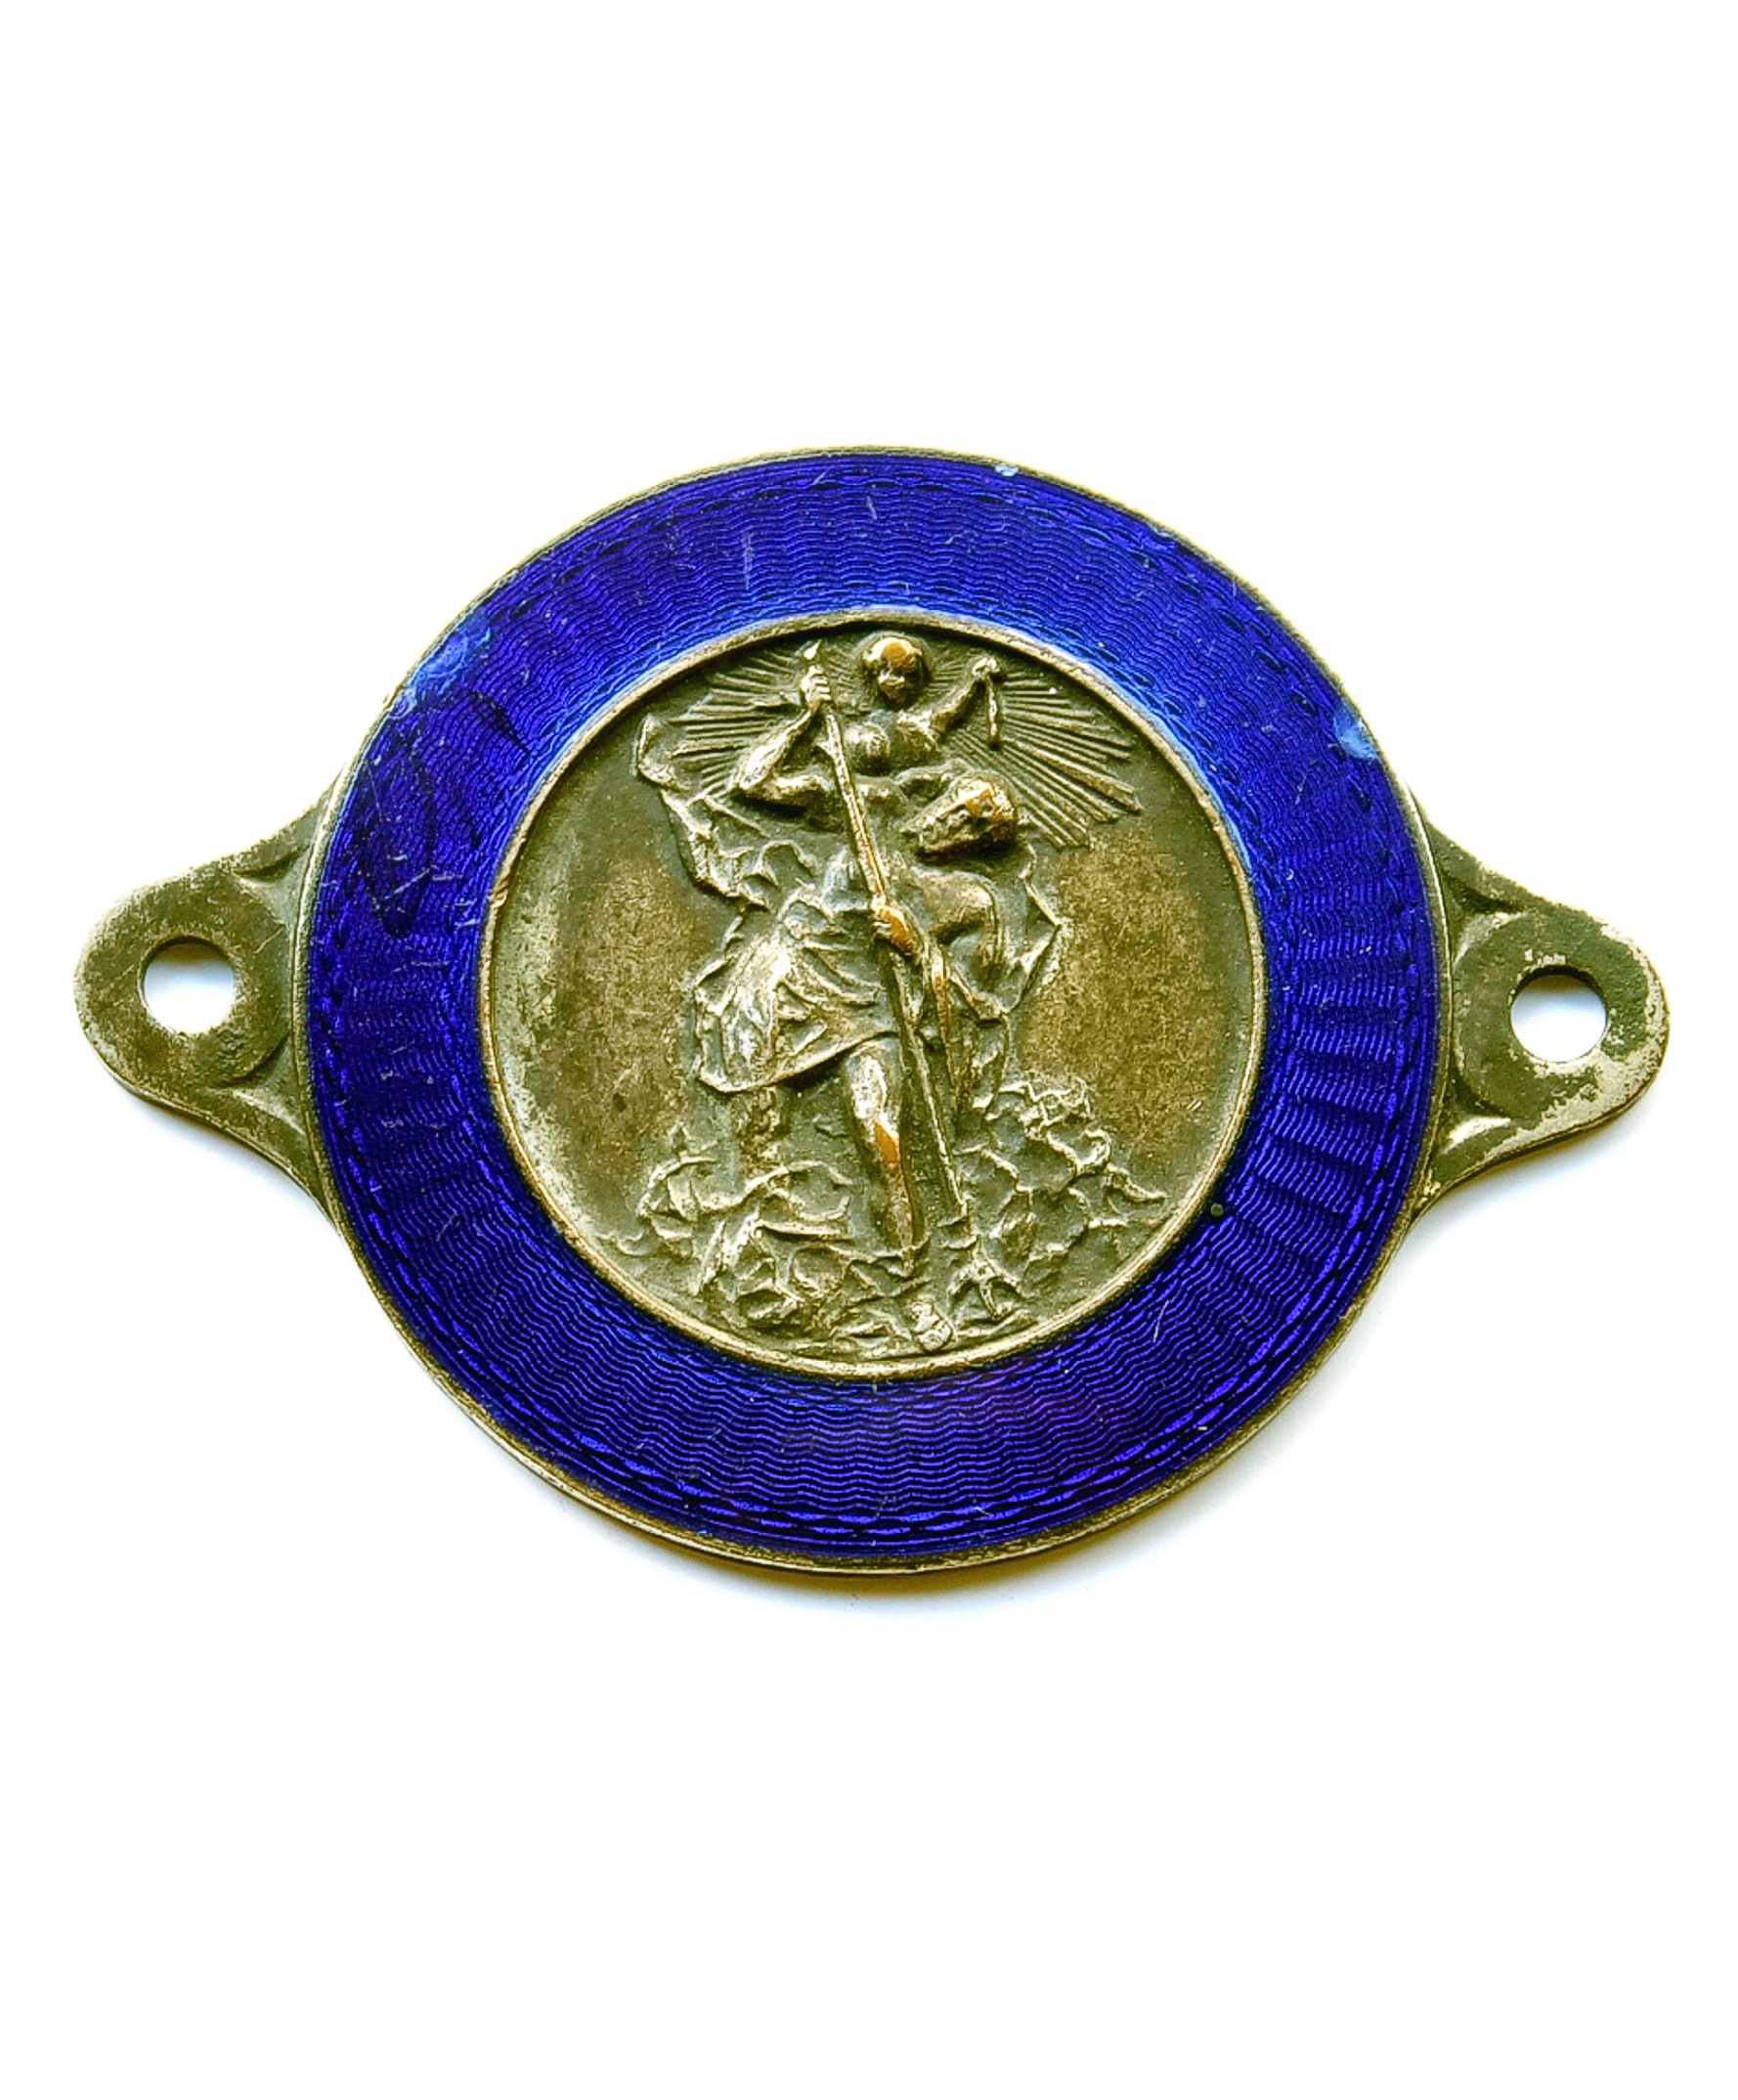 Silver plated bronze with enamel over guilloche St.Christopher badge for sale